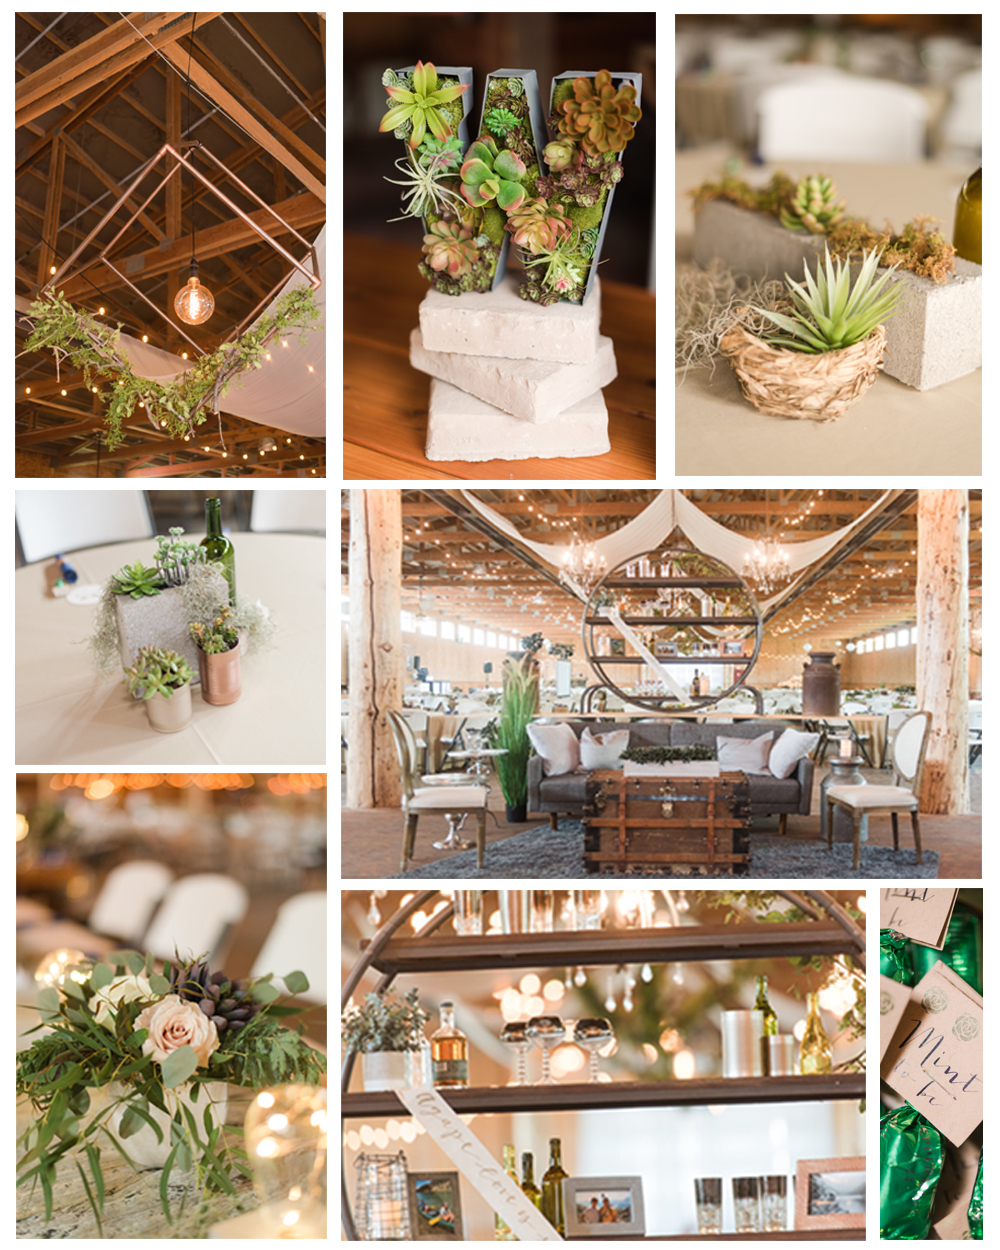 kate+Dylan-Billings MT-rustic wedding reception details.jpg